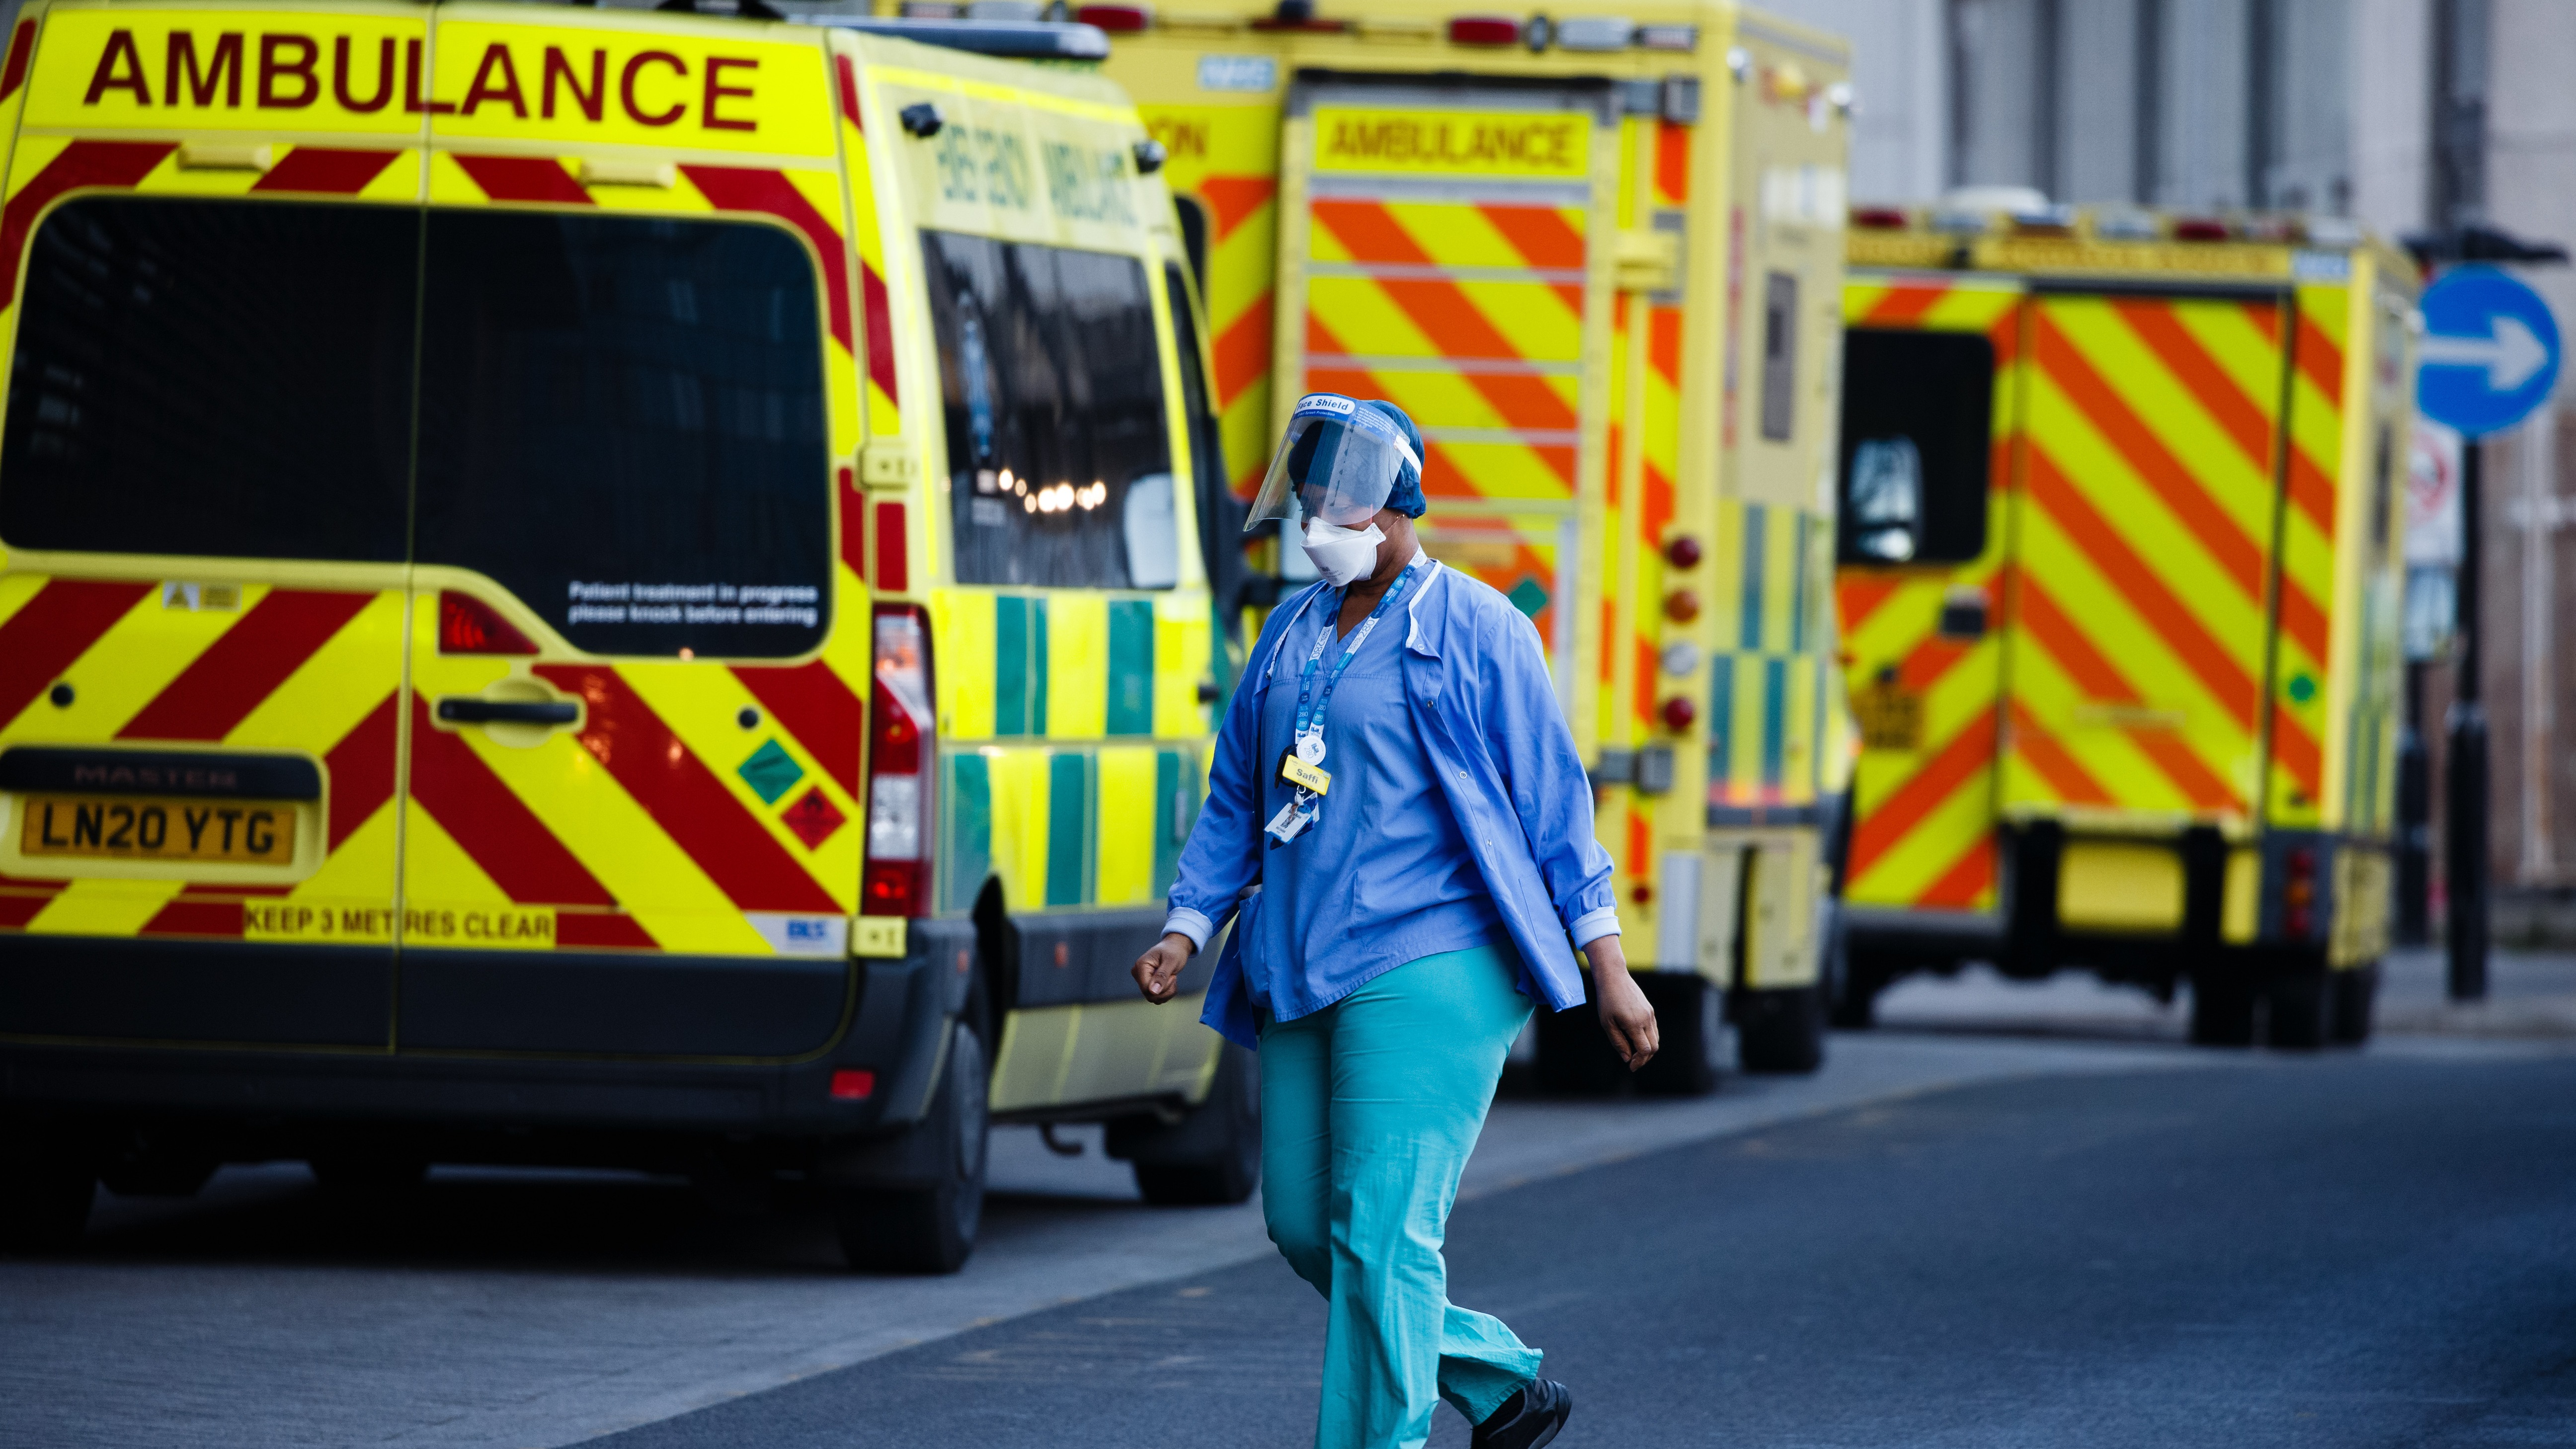 Covid: 35 new deaths reported in the UK as cases rise by 2,206